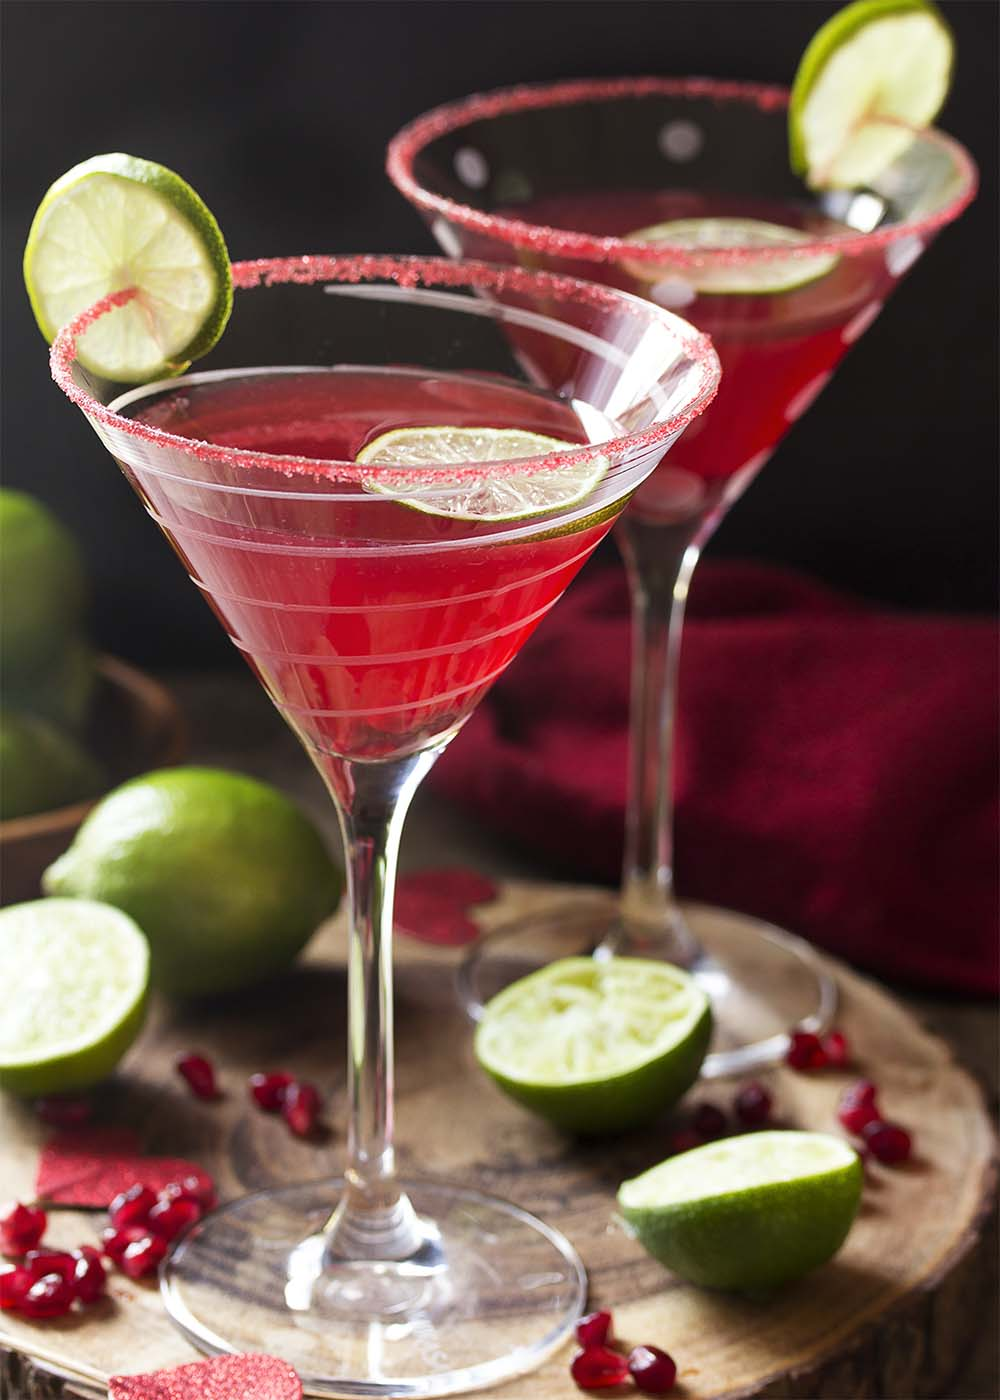 Two glasses of pomegranate martini with limes, pom arils, and red hearts around.